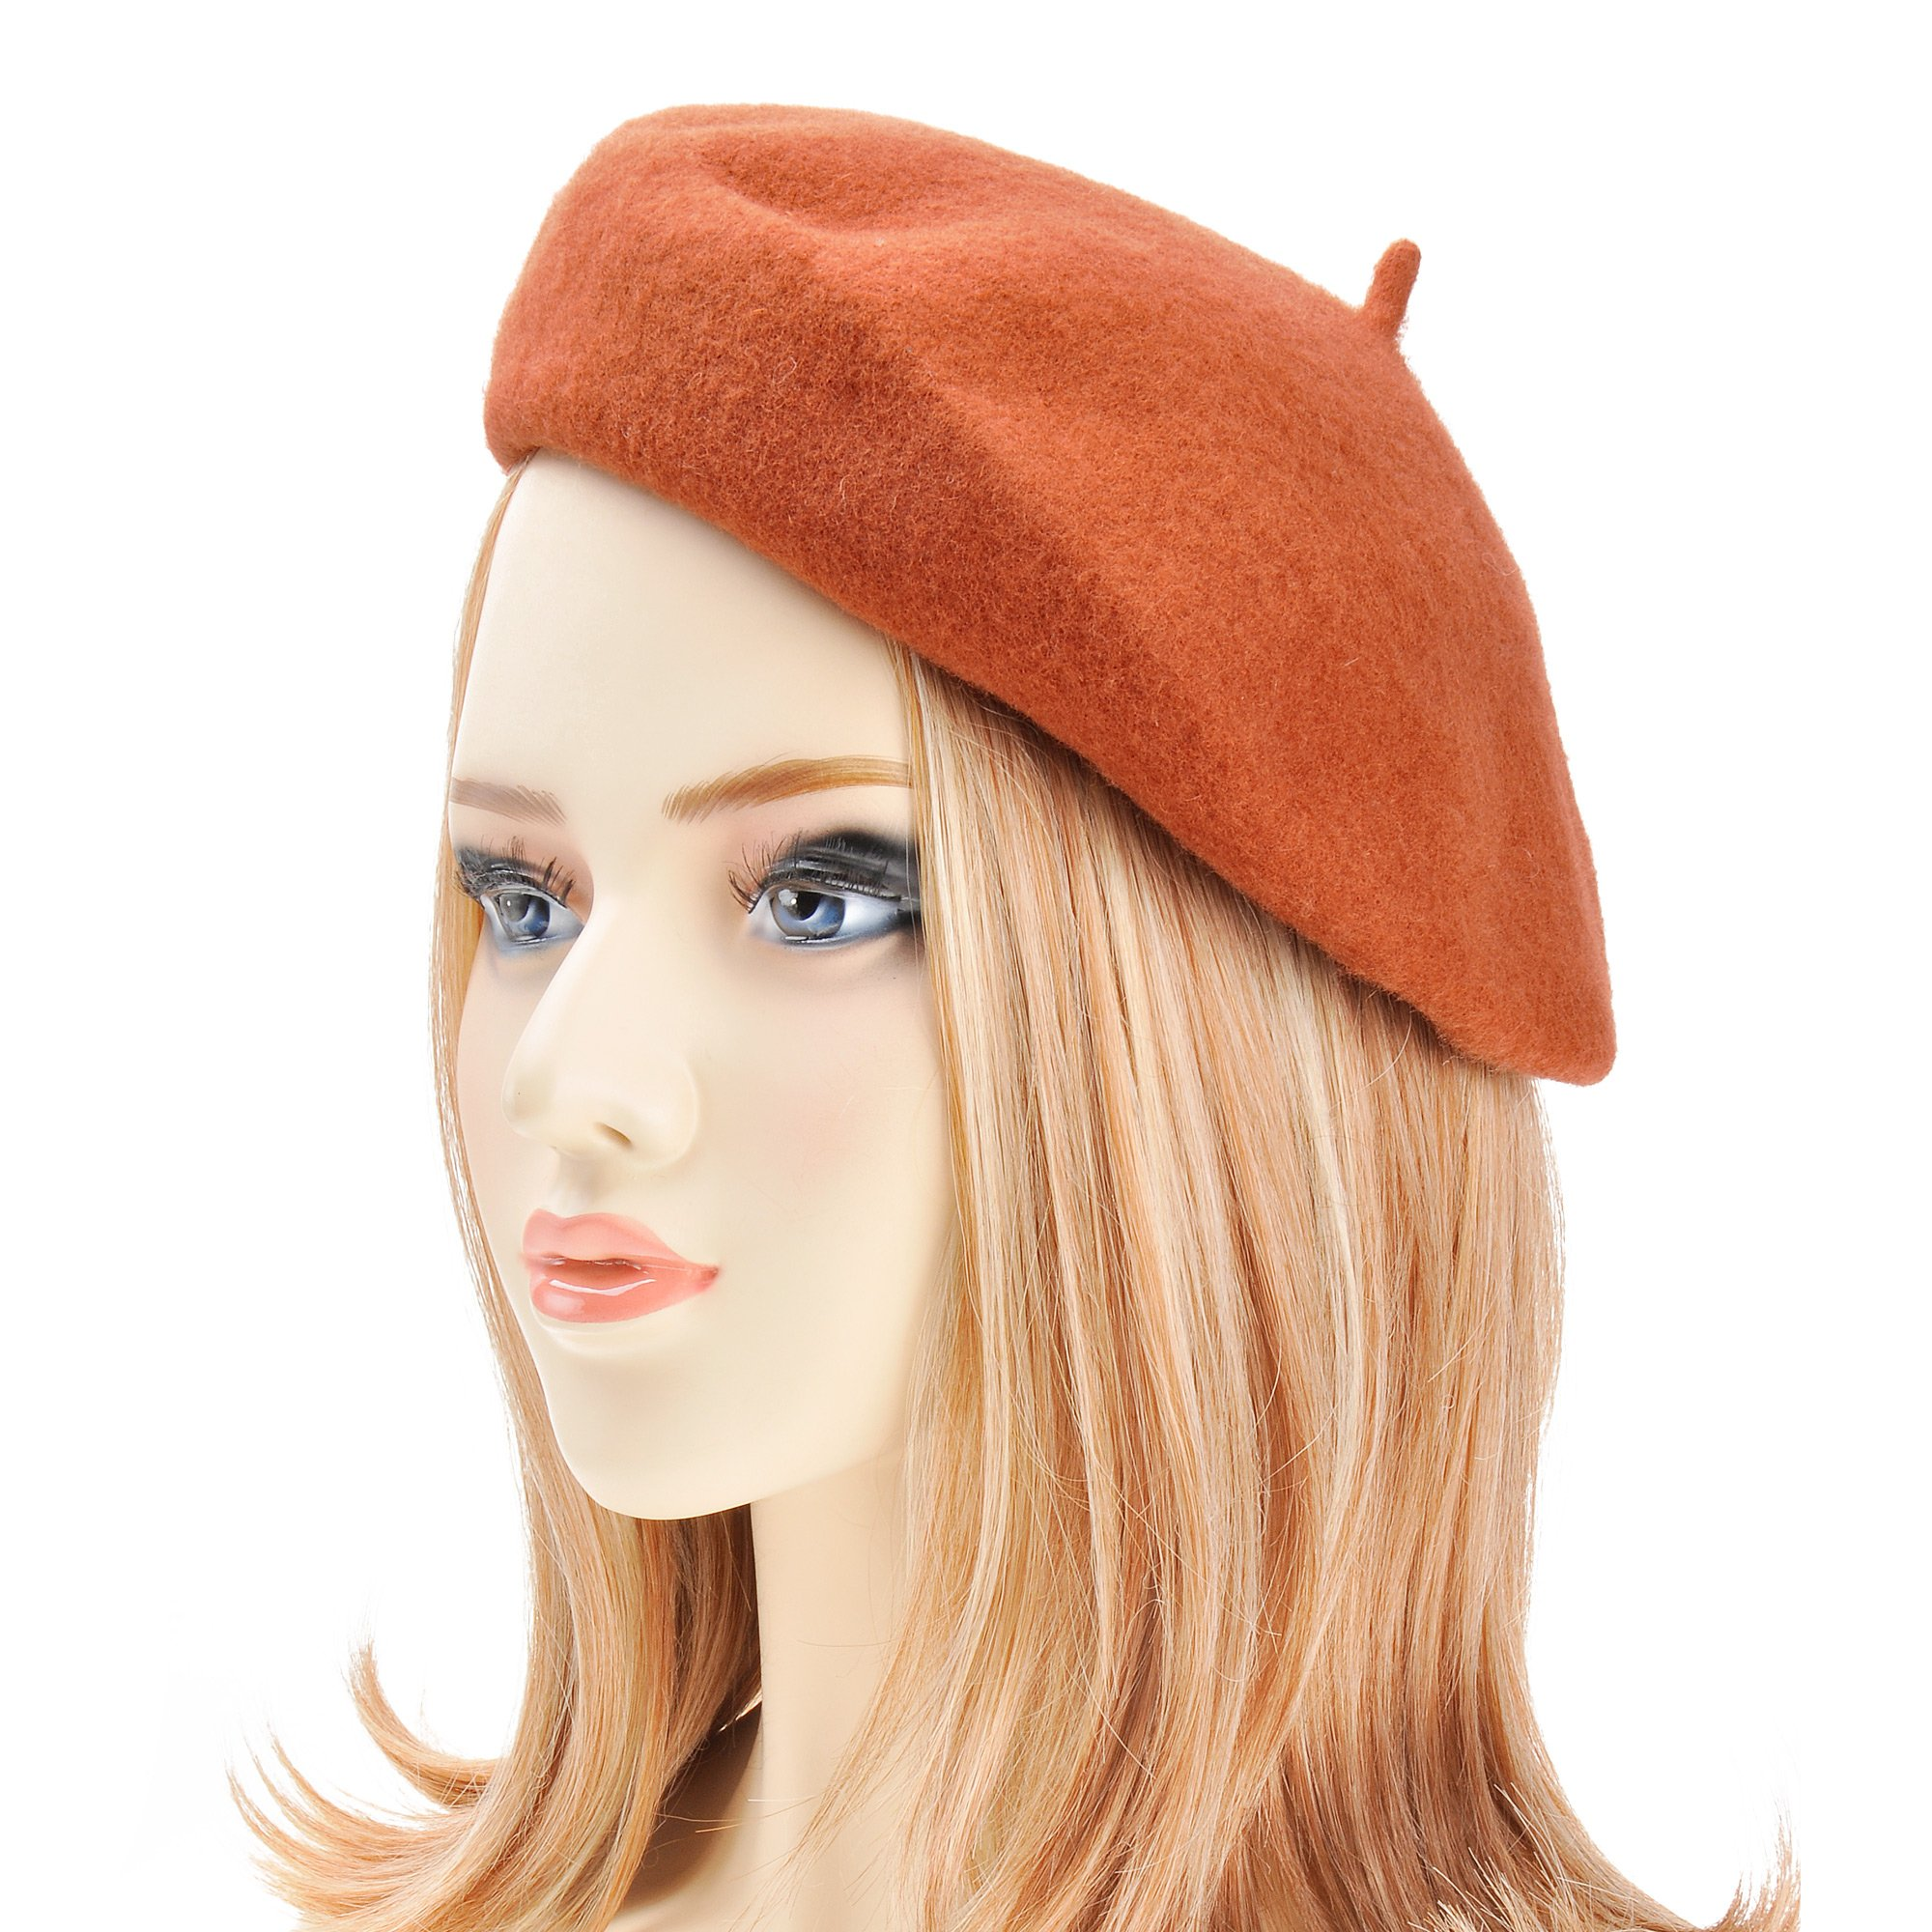 ZLYC Wool Beret Hat Classic Solid Color French Beret for Women (Rust)